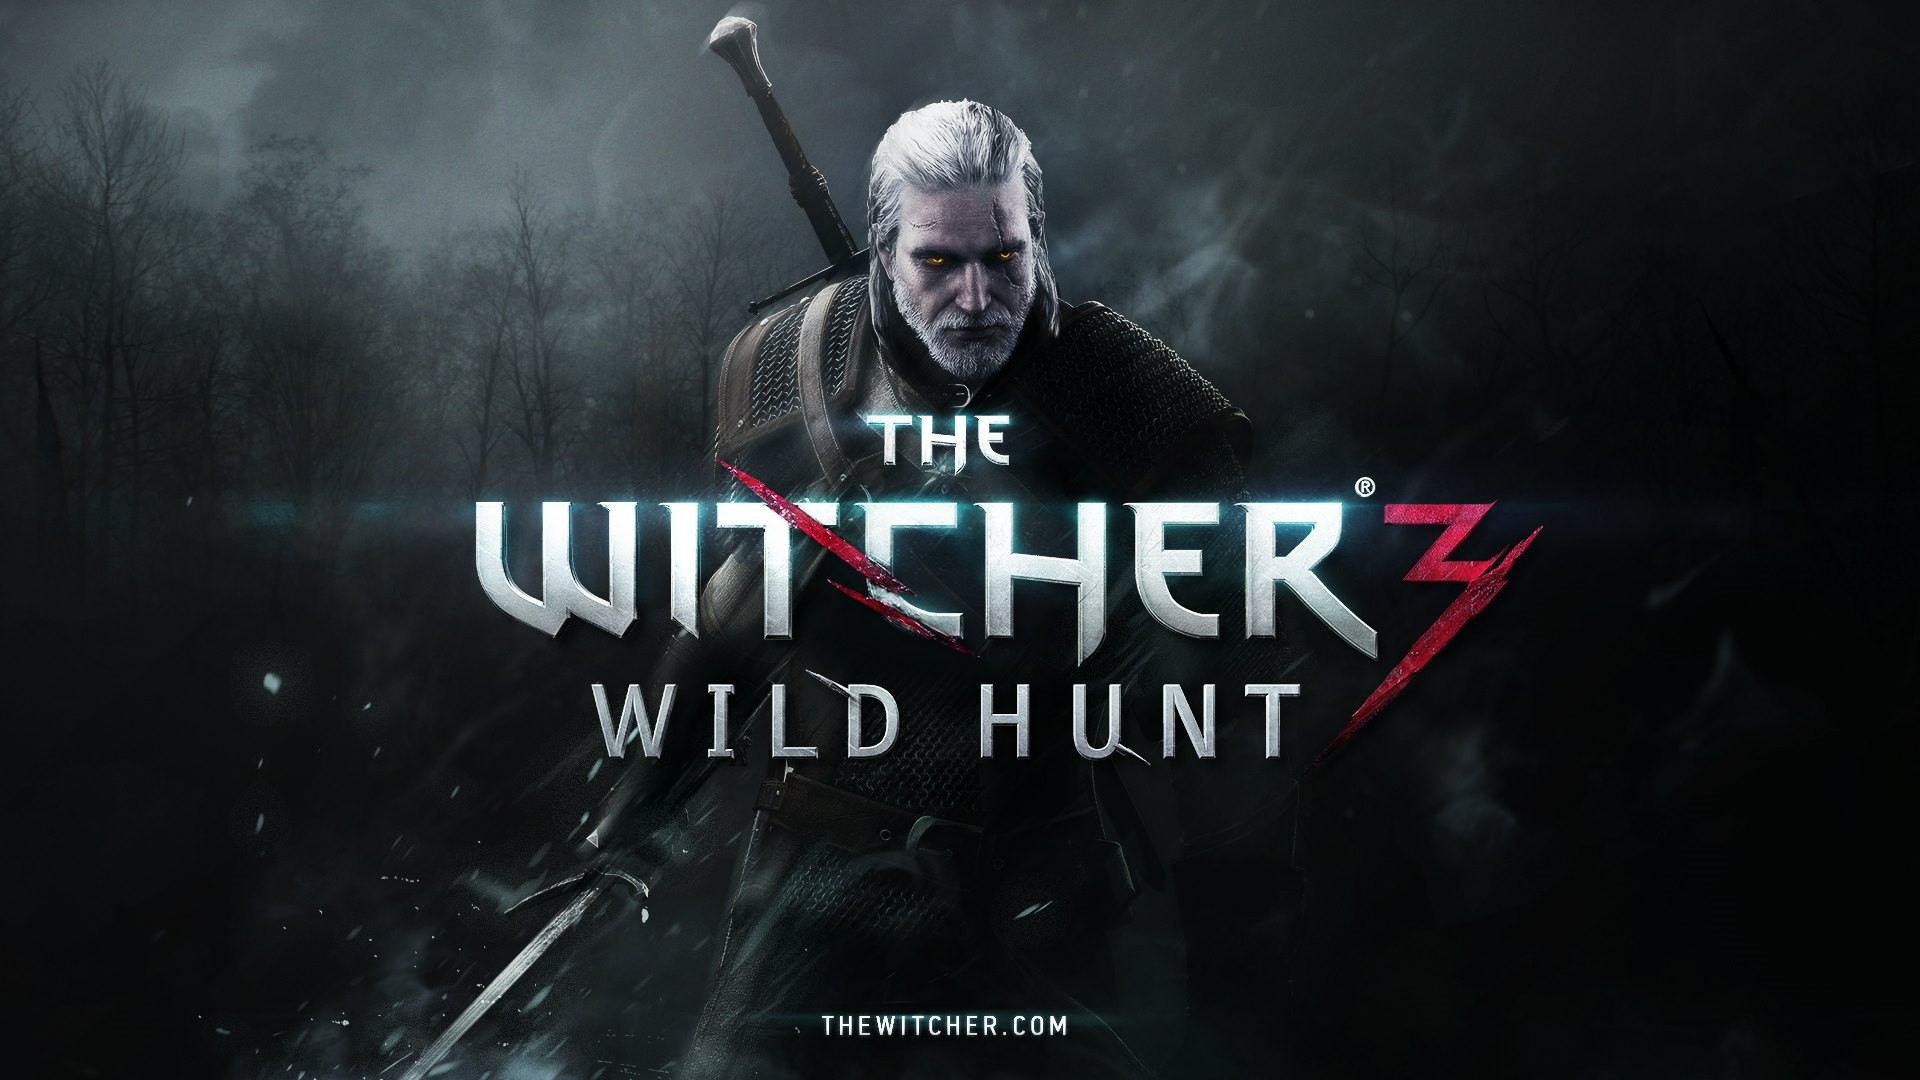 Witcher 3 Wallpaper 4k Download Free Wallpapers For Desktop